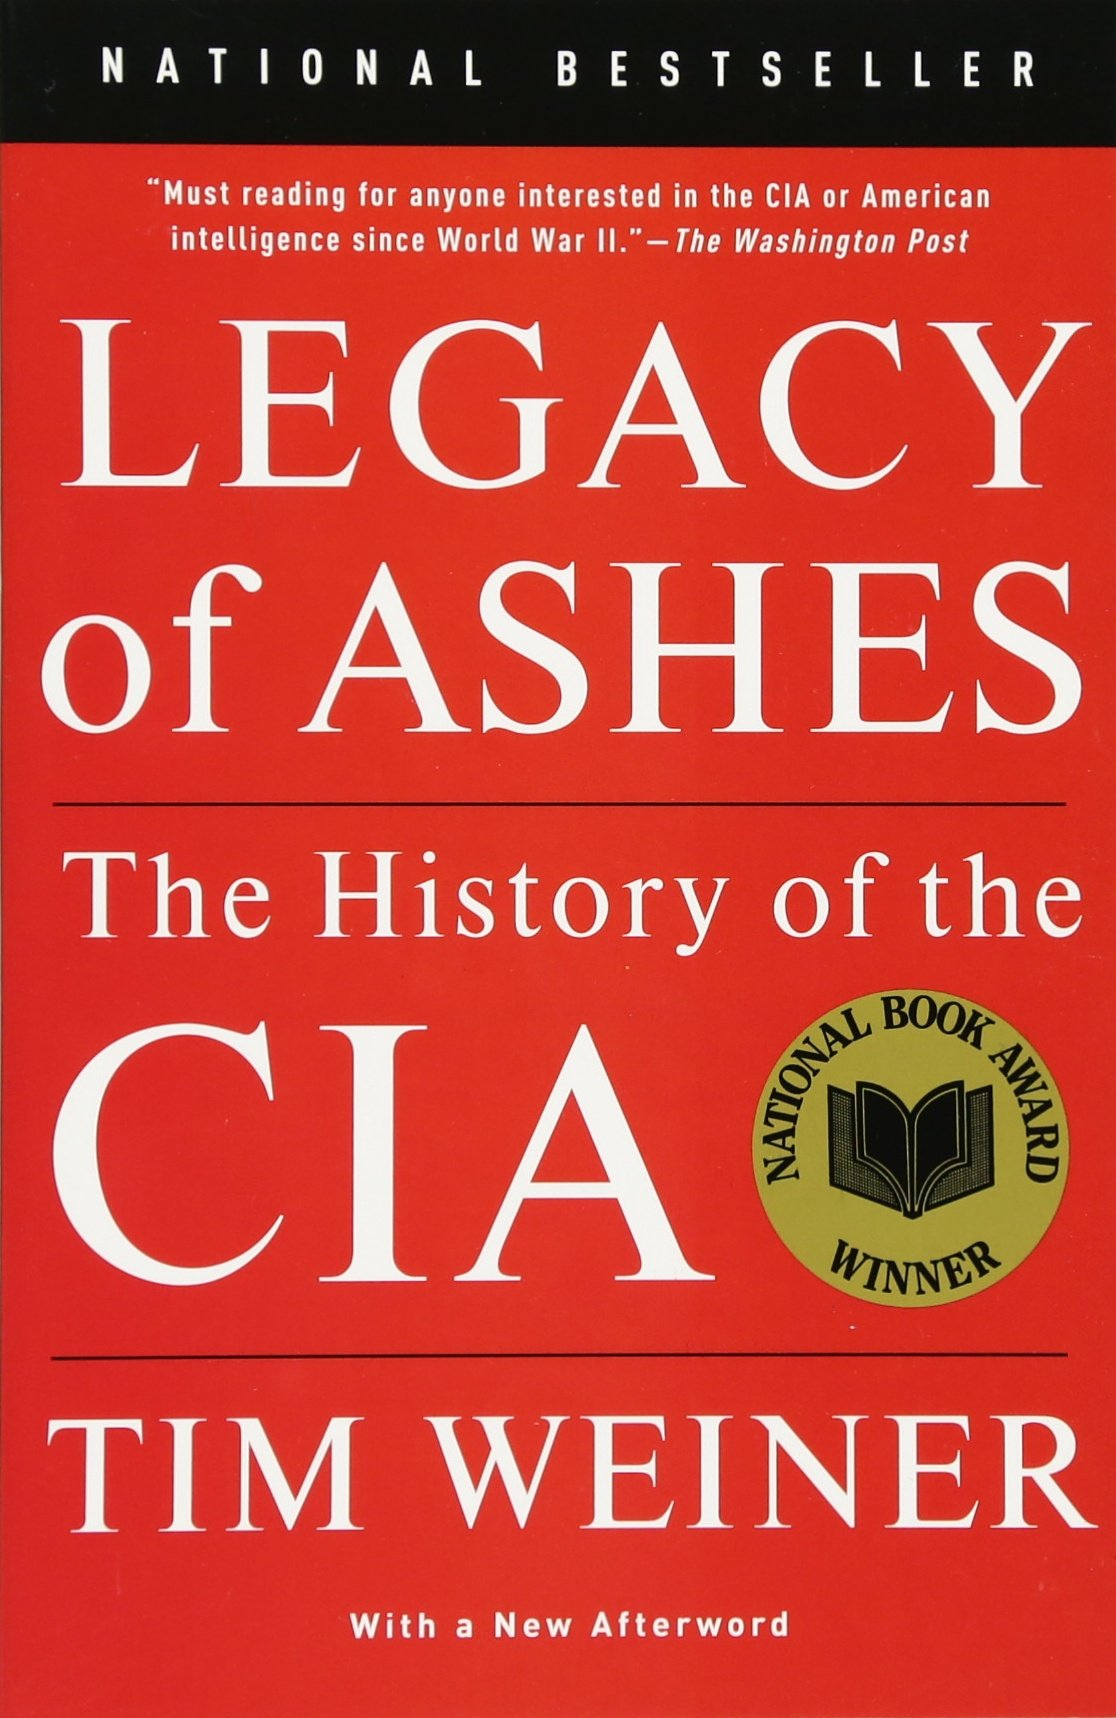 Legacy of ashes the history of the cia tim weiner 9780307389008 legacy of ashes the history of the cia tim weiner 9780307389008 amazon books fandeluxe Choice Image